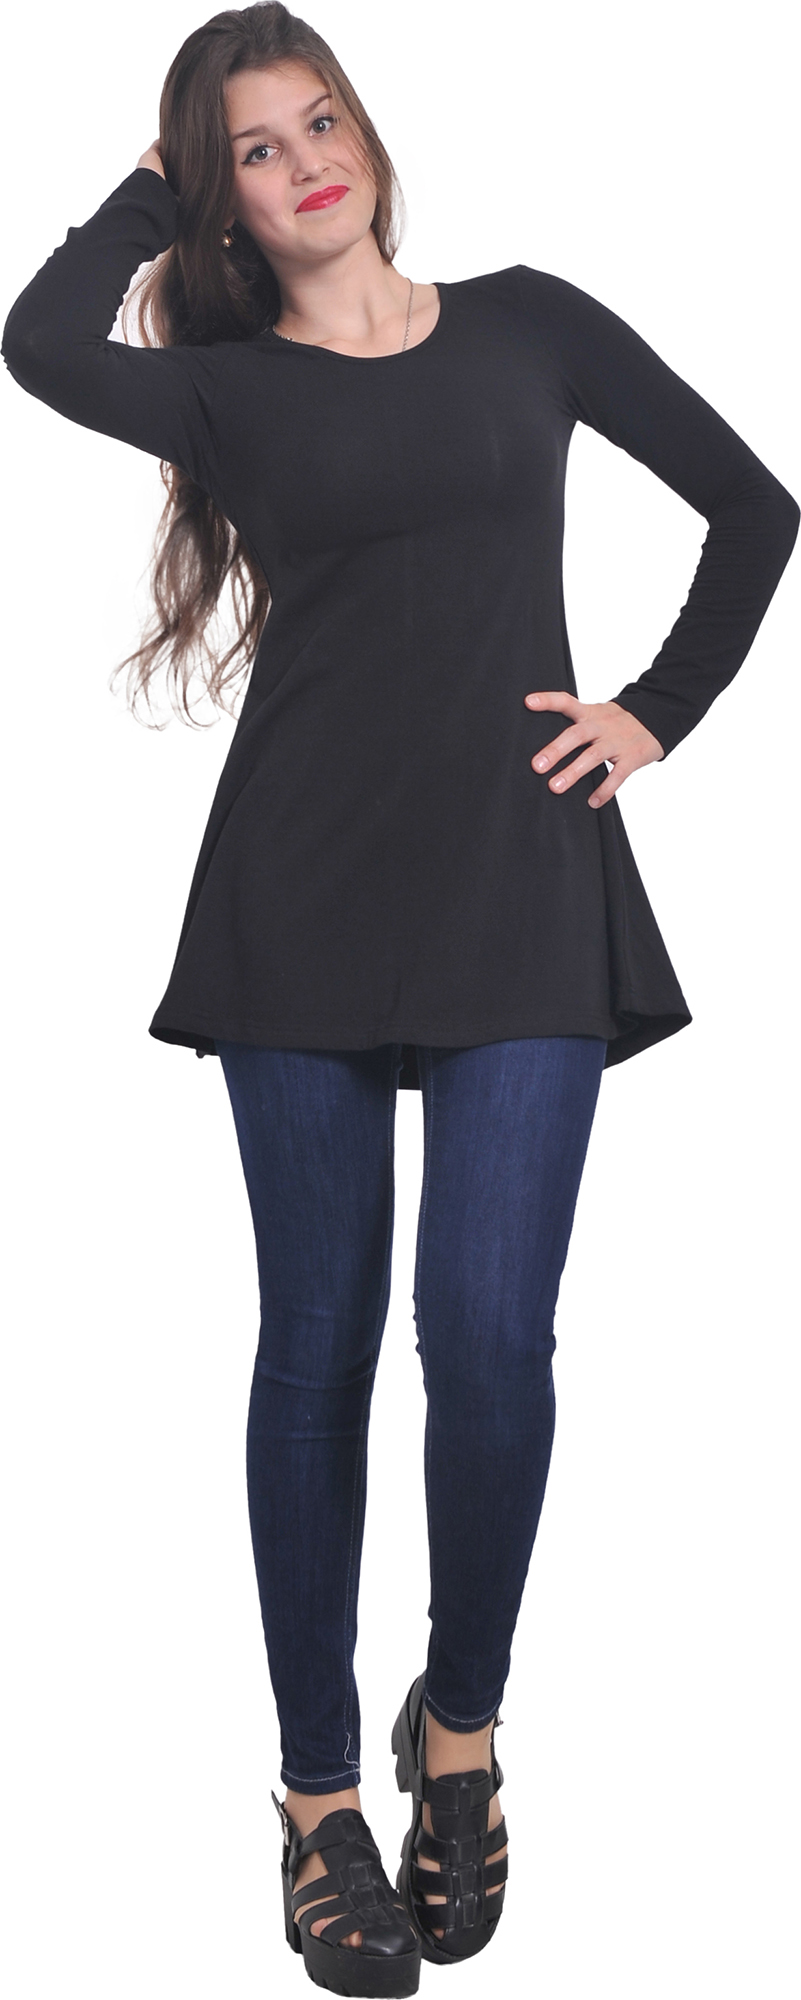 MARYCRAFTS WOMENS JERSEY LOOSE FIT FLARED T SHIRT LONG SLEEVE ...